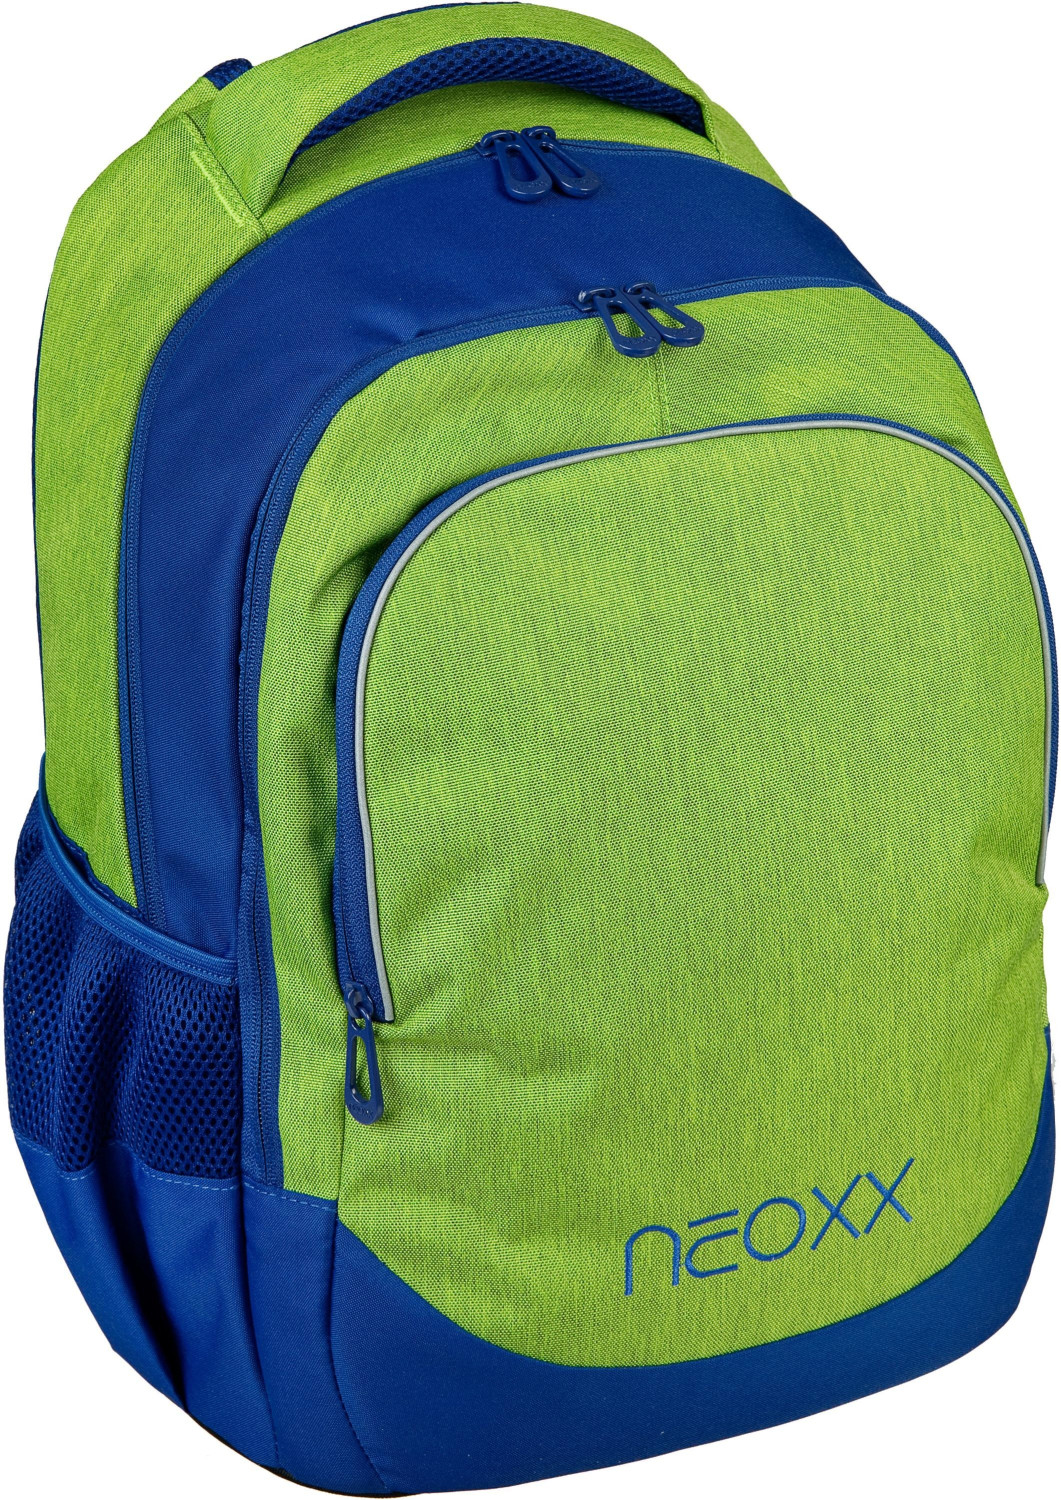 neoxx Fly Lime o'clock